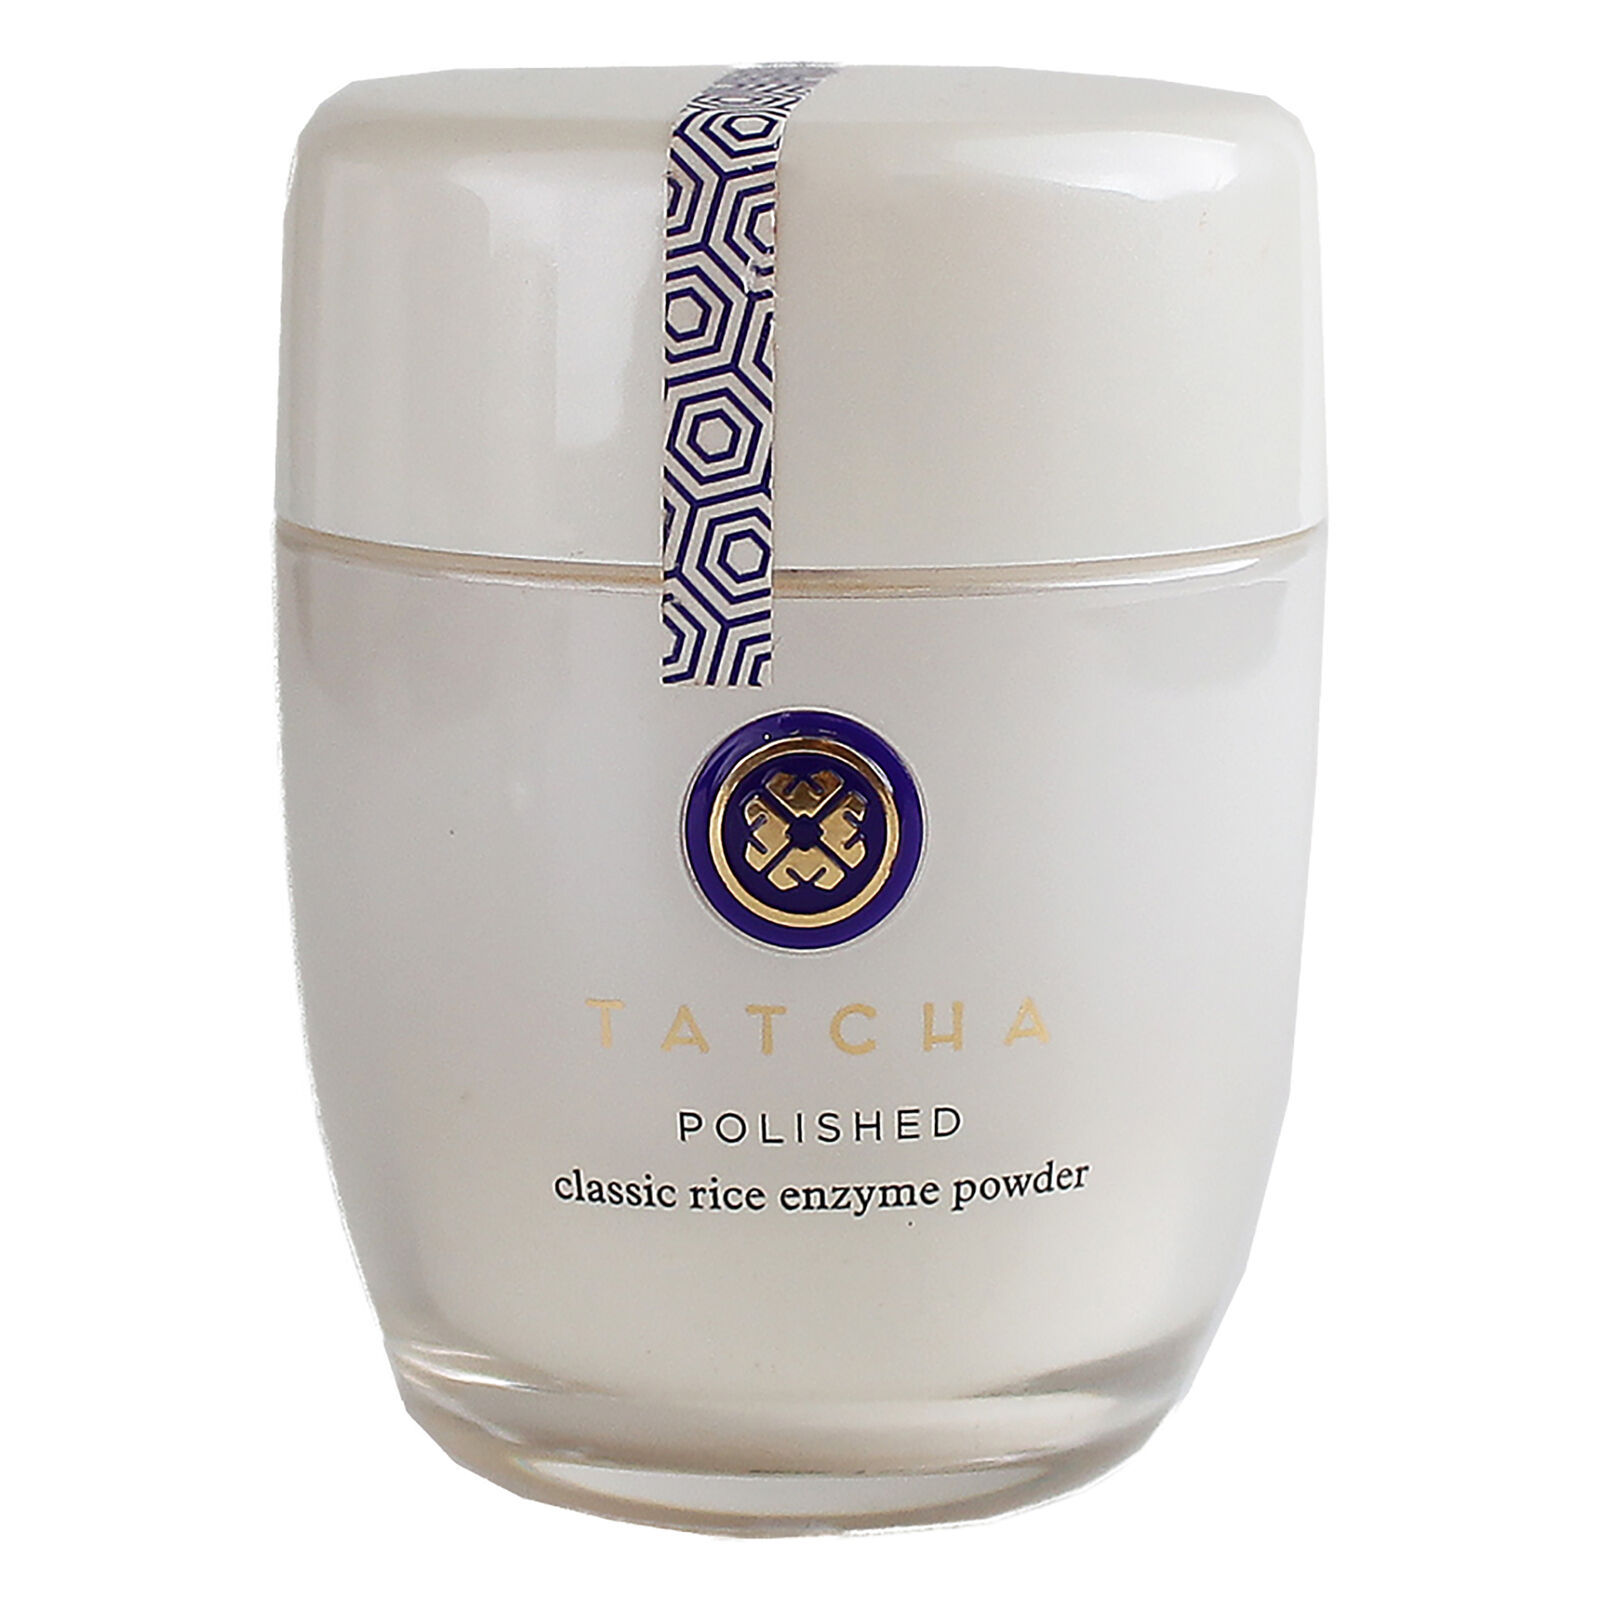 Primary image for Tatcha The Rice Polish Classic Foaming Enzyme Powder Comb. Skin 2.1oz/60g SEALED